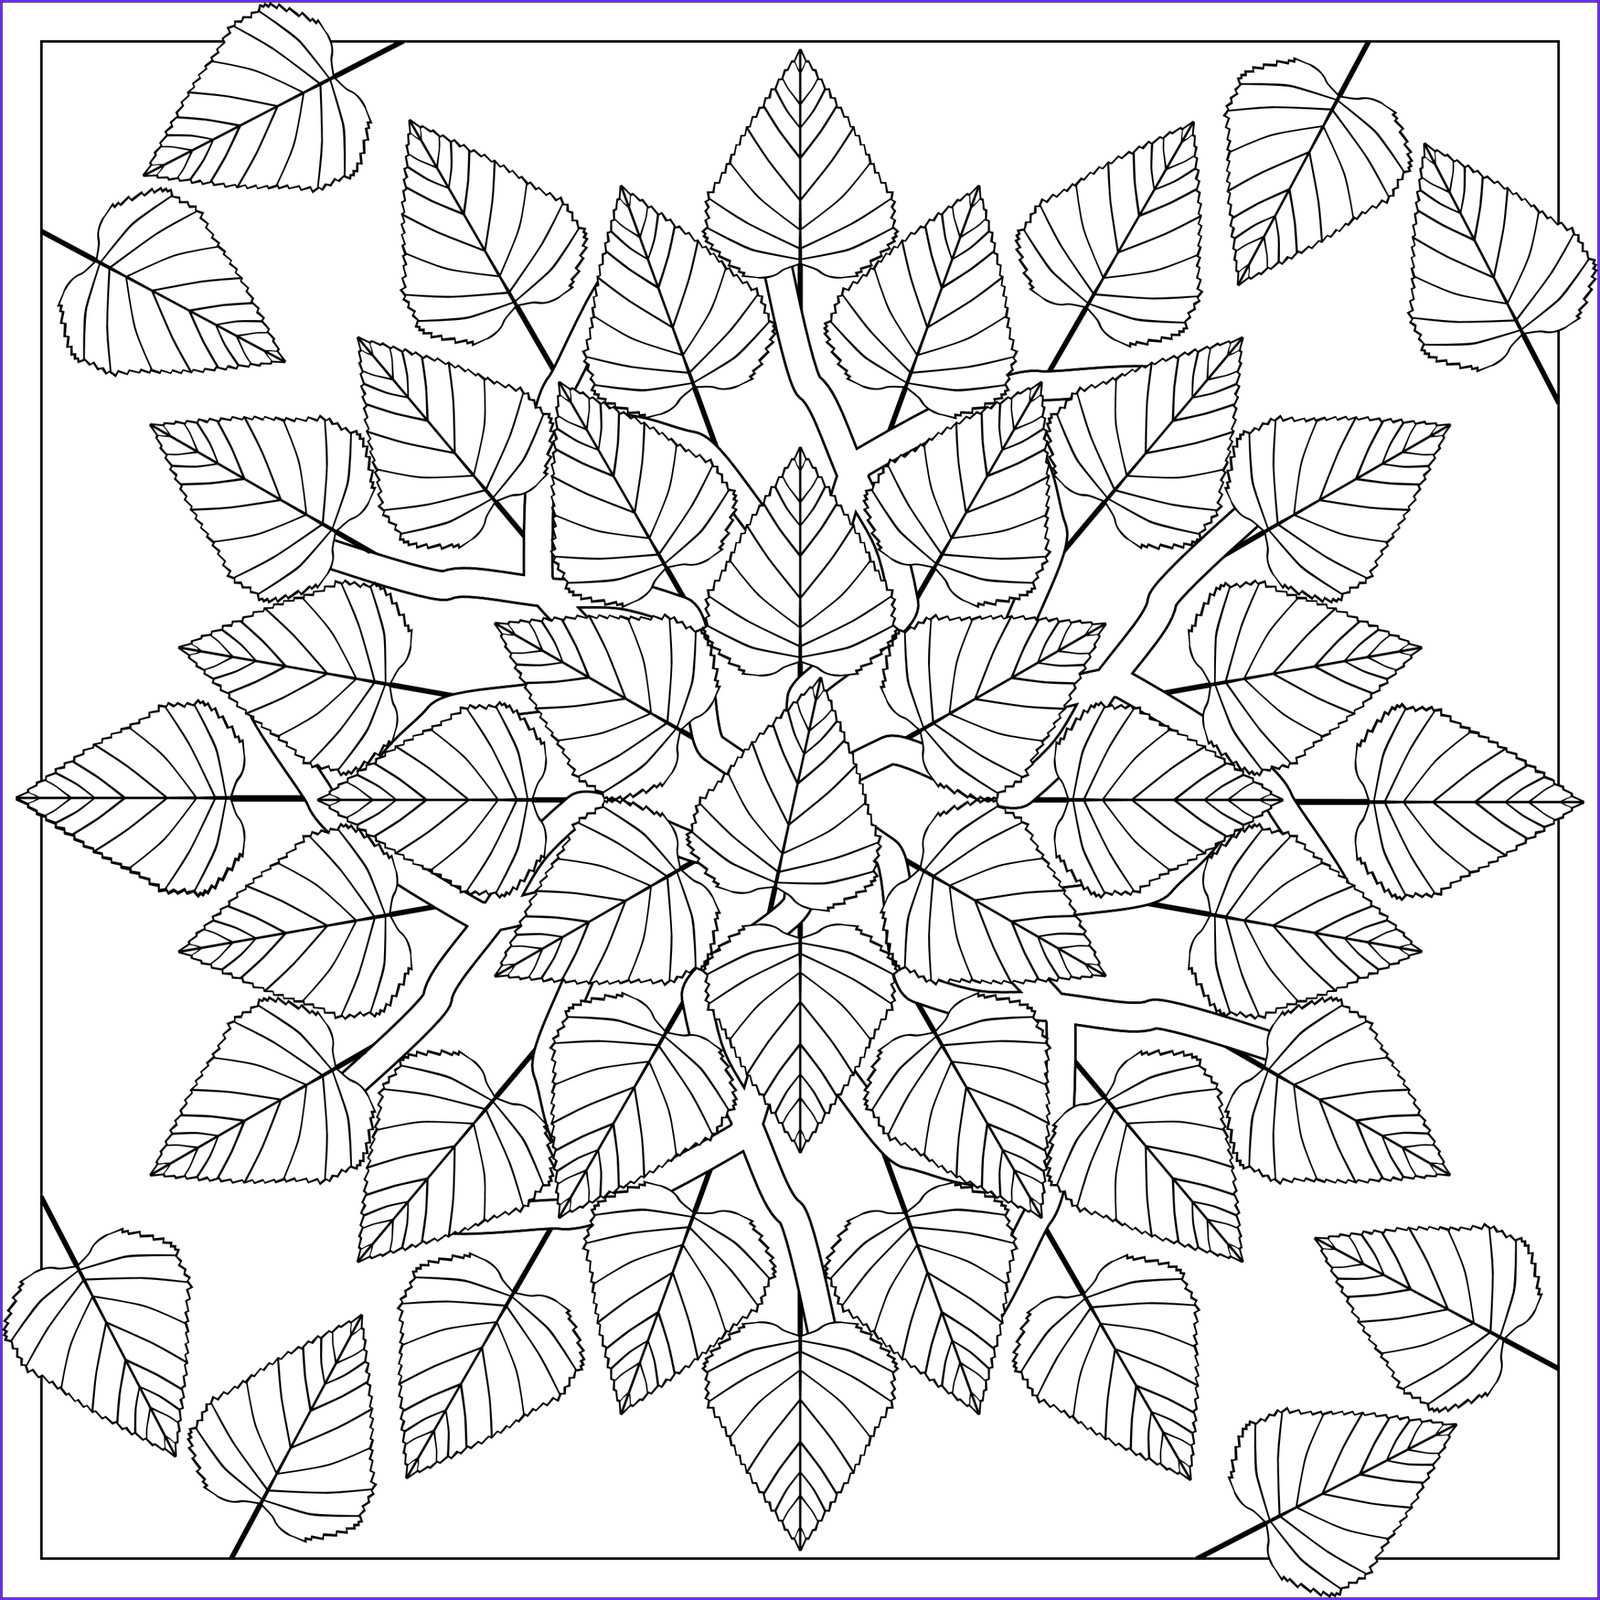 Autumn Coloring Sheets New Images Fall Coloring Pages for Adults Best Coloring Pages for Kids